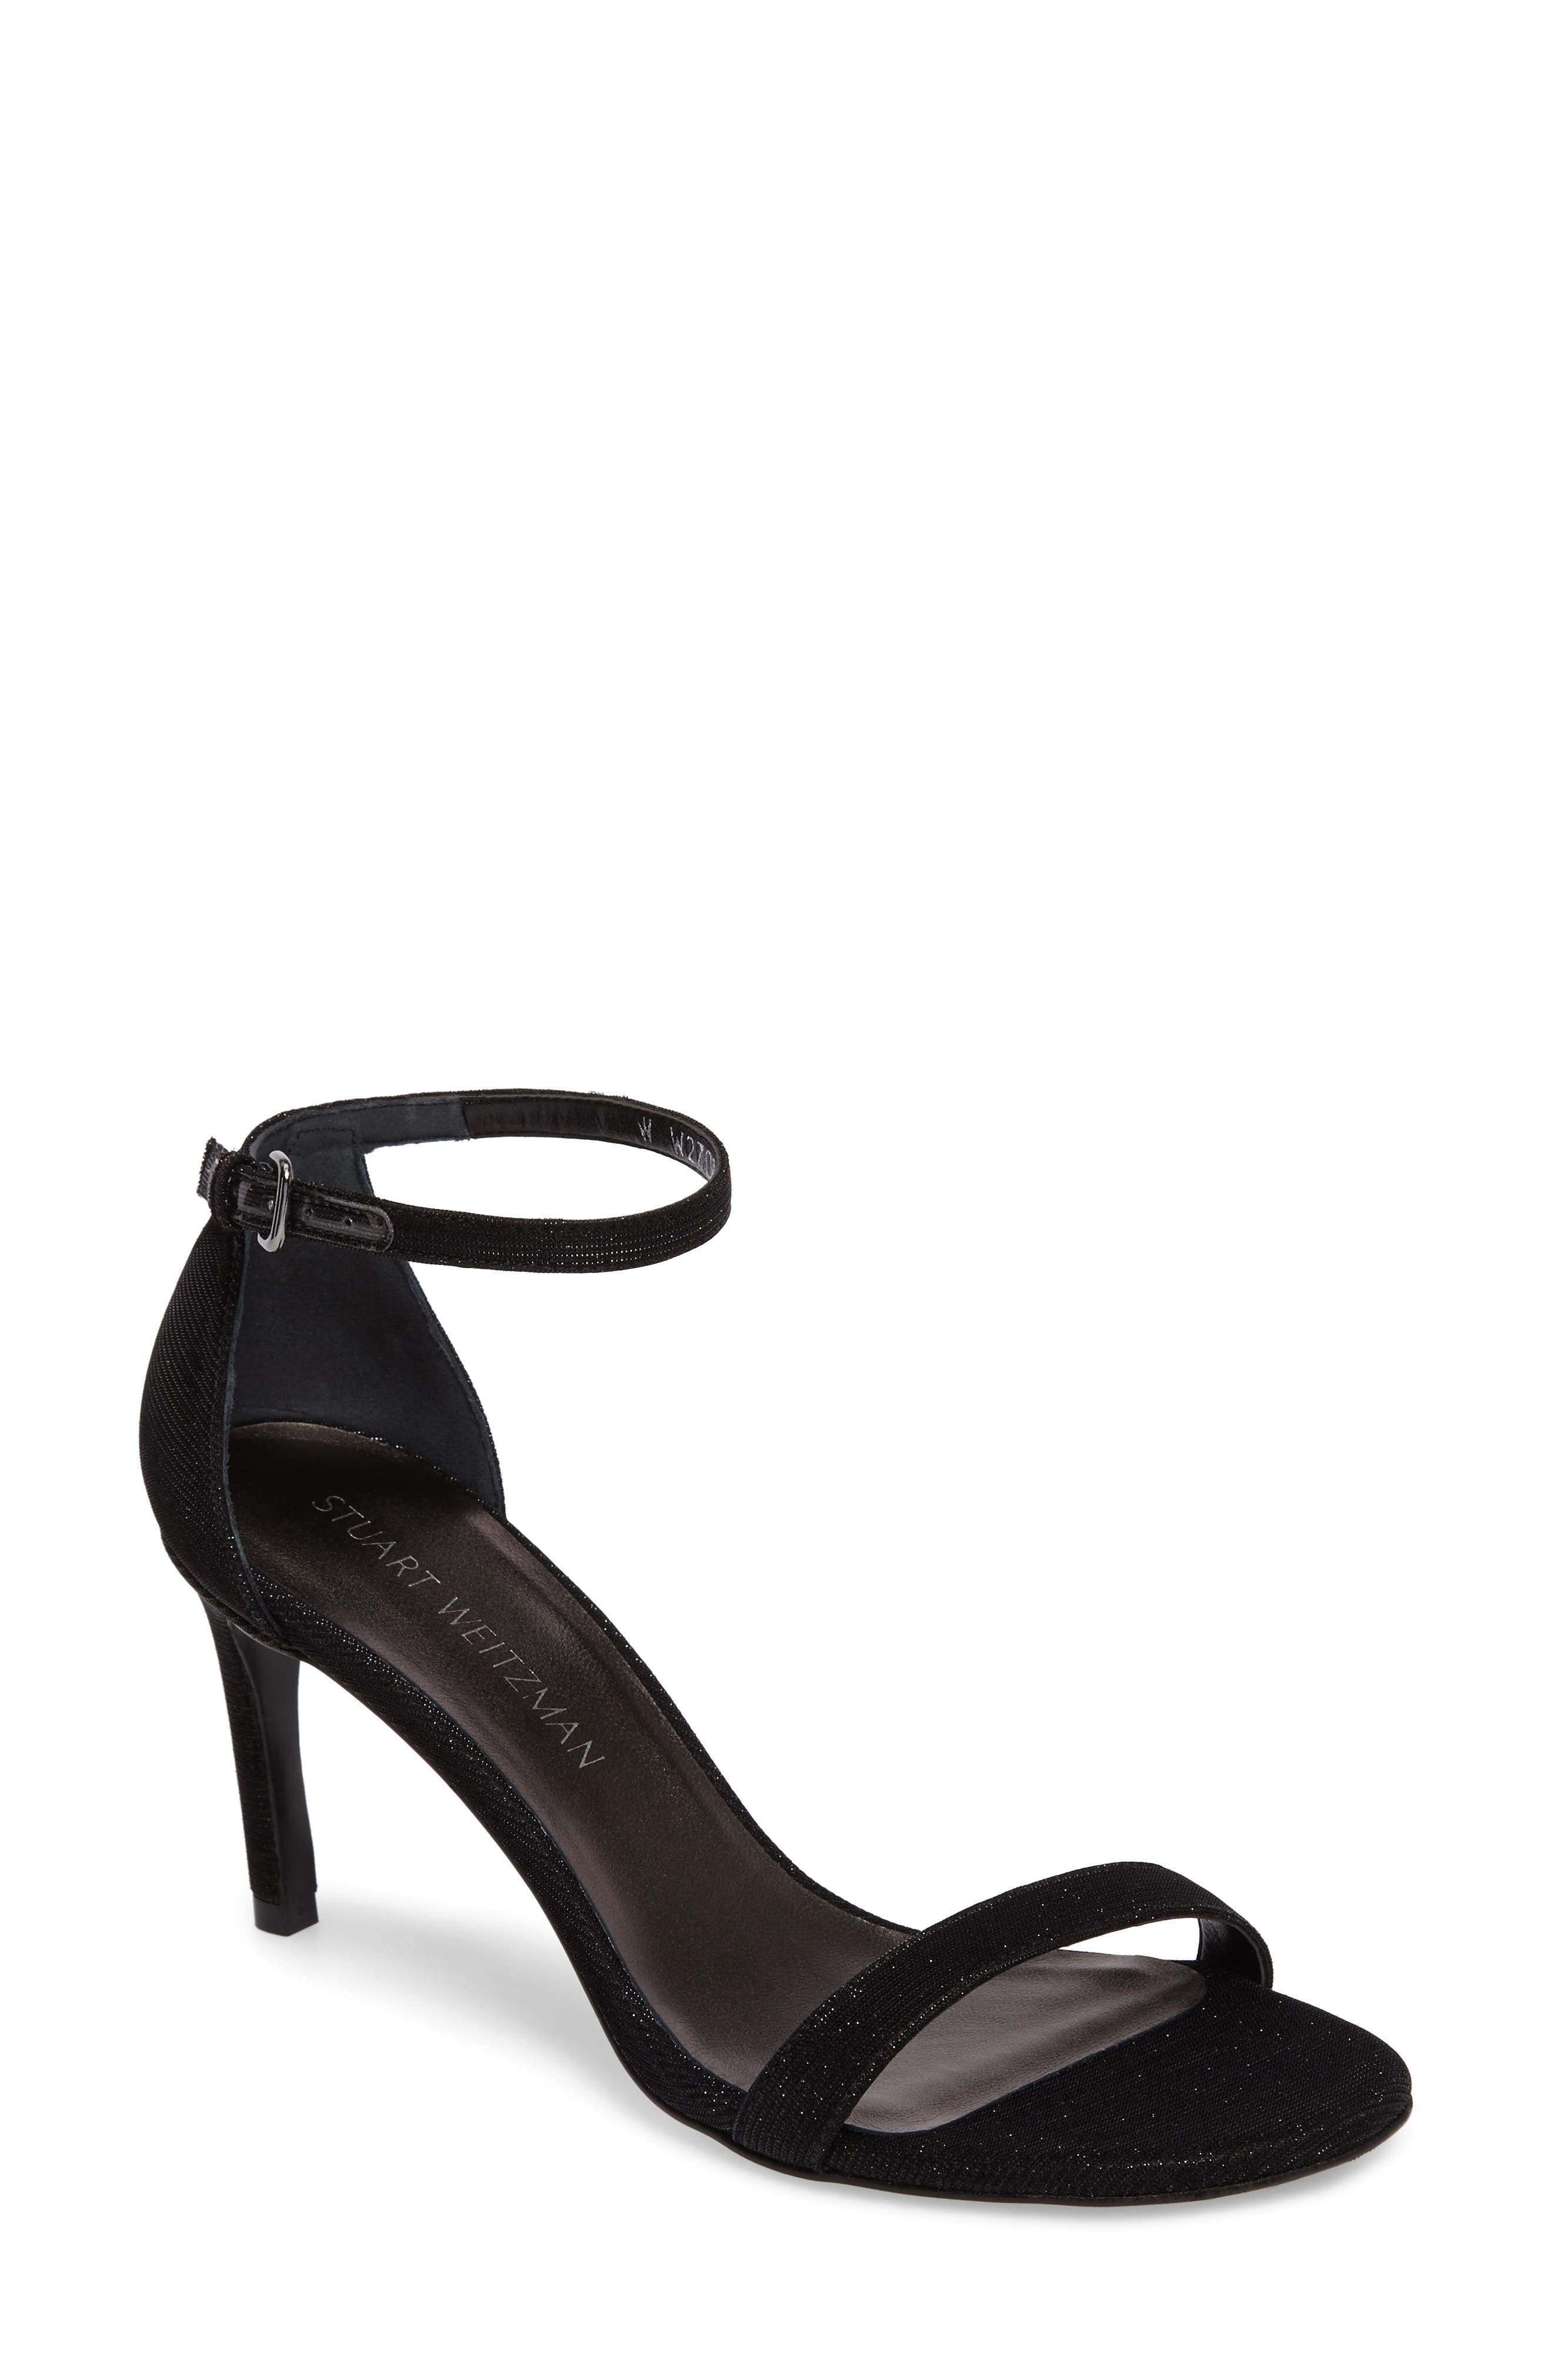 'Nunaked' Leather Ankle Strap Sandal,                             Main thumbnail 1, color,                             Nero Nocturn Nappa